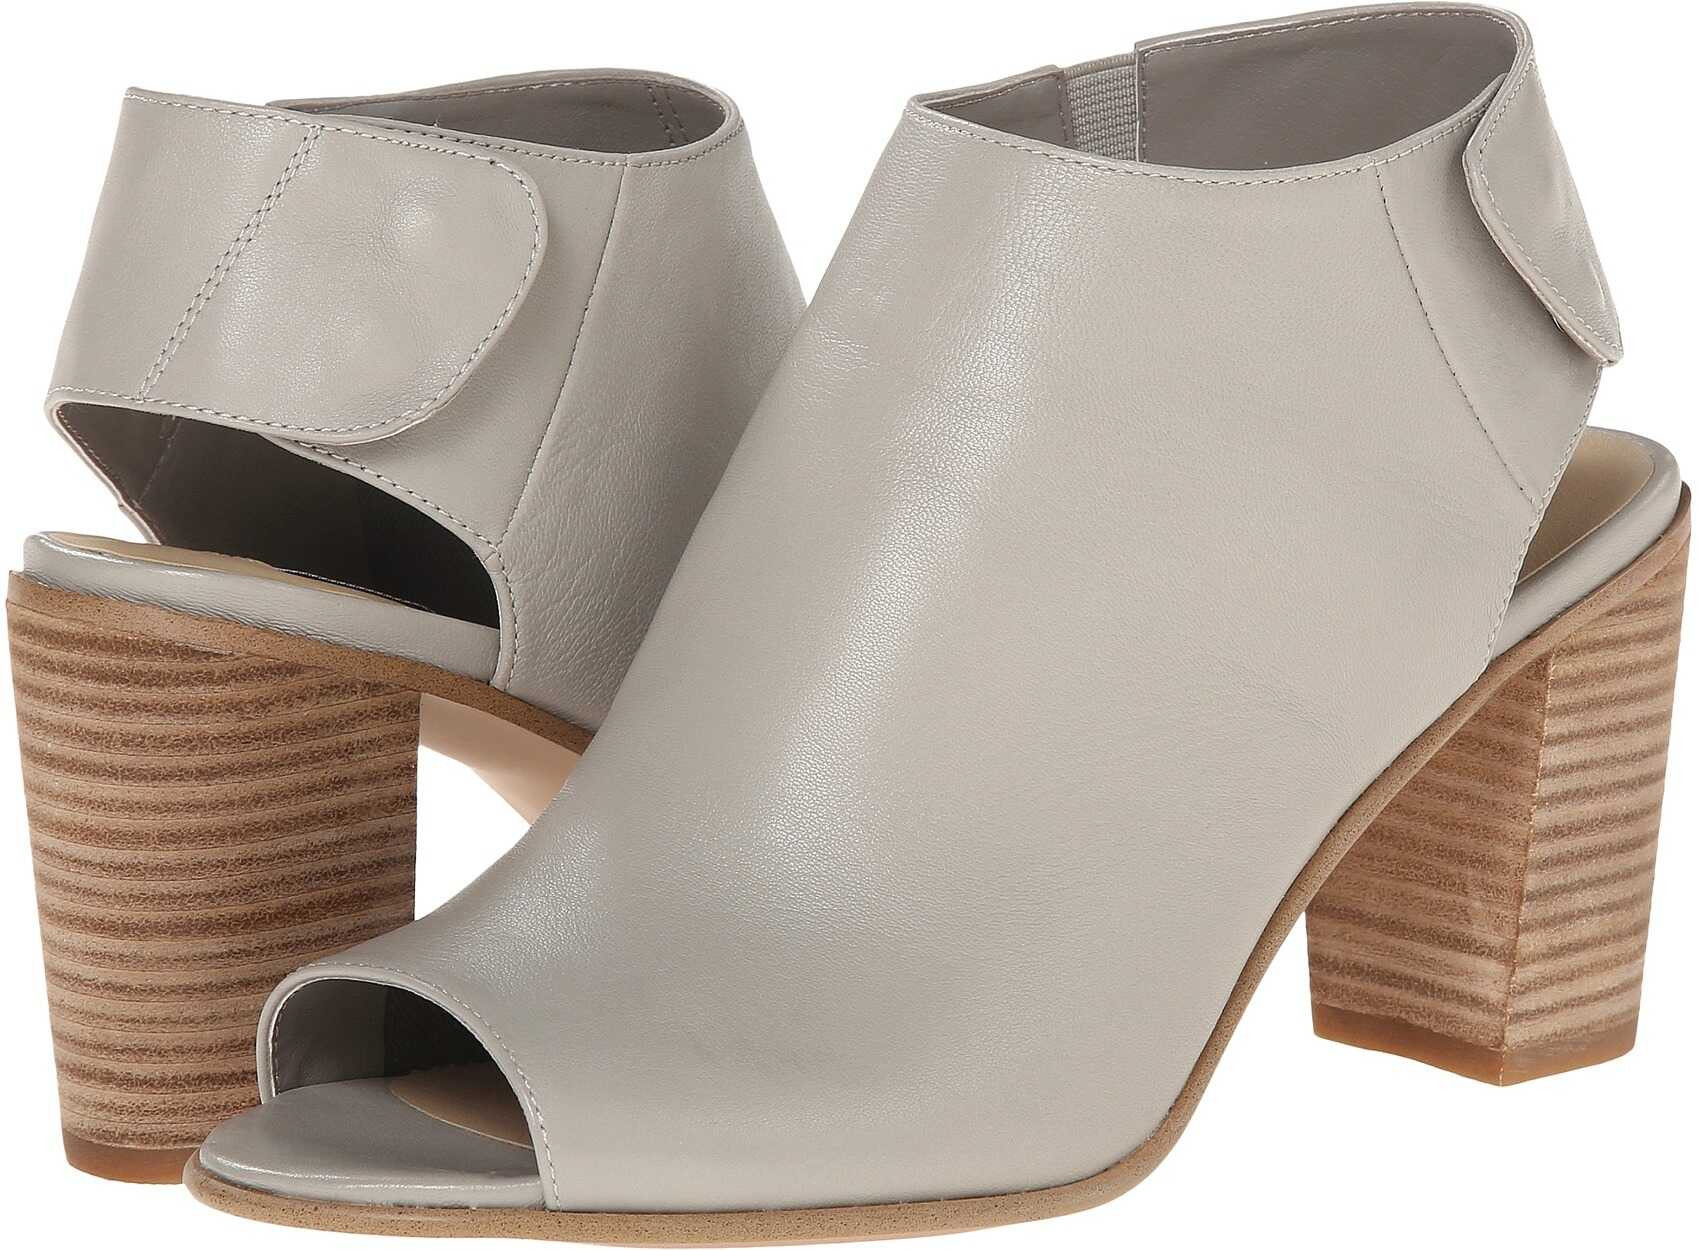 Steve Madden Nonstp Heel Stone Leather